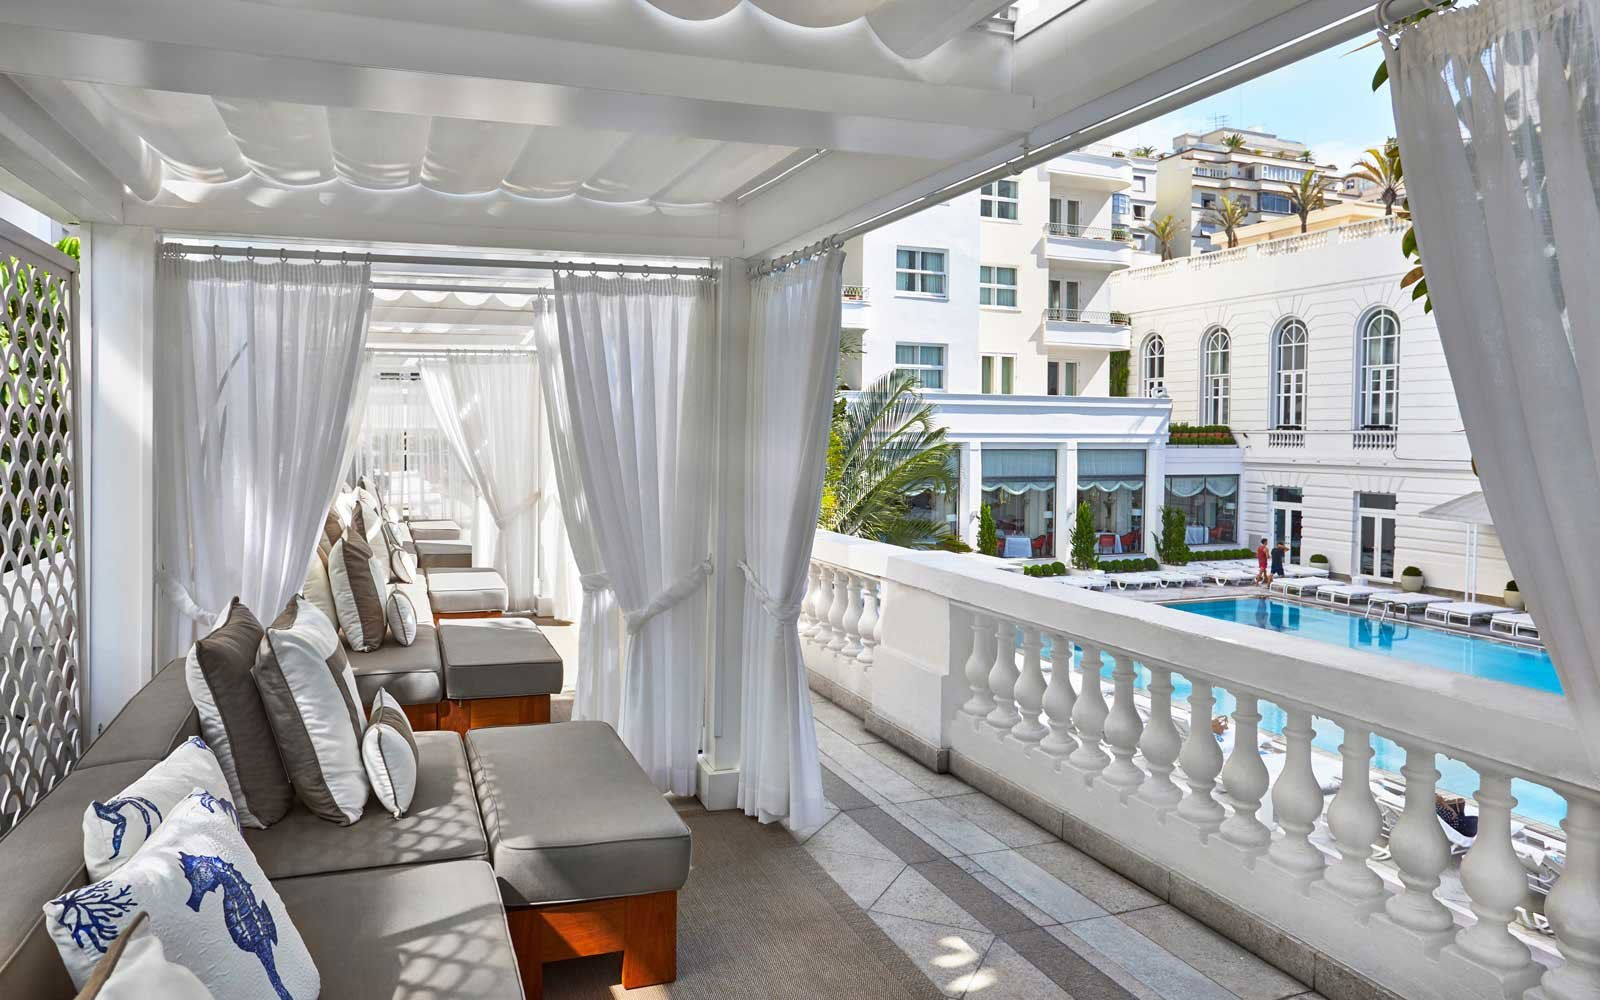 View from the terrace to the pool at the Belmond Copacabana hotel